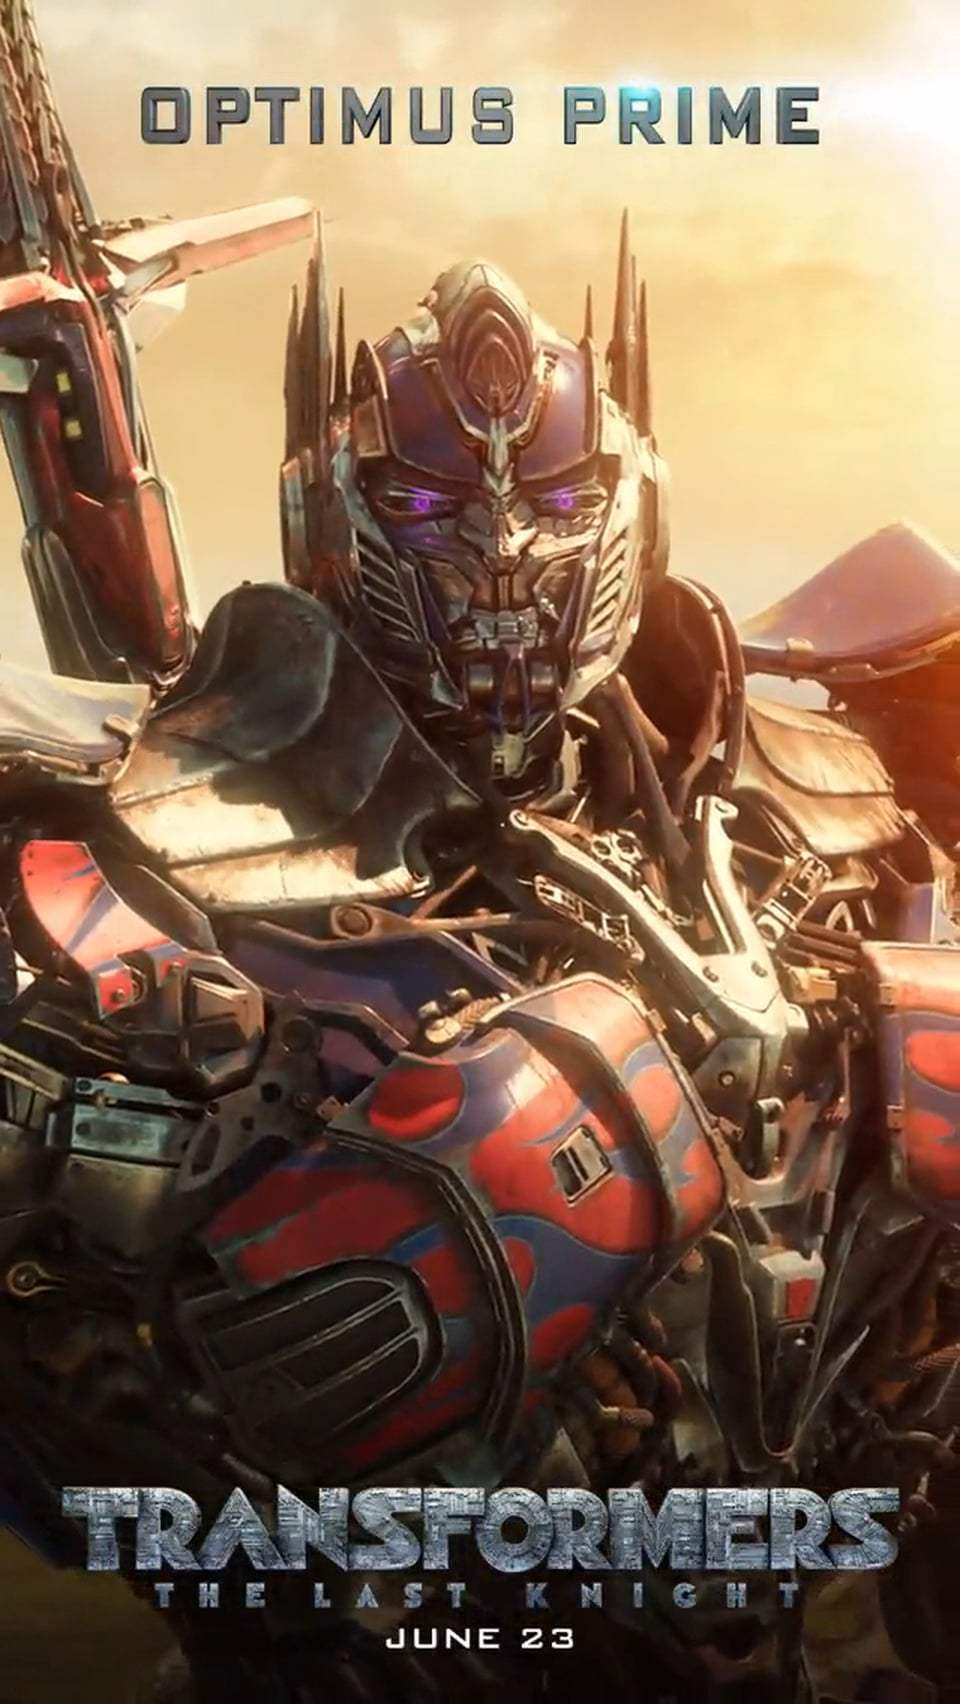 Transformers: The Last Knight Motion Poster - Optimus Prime (2017)